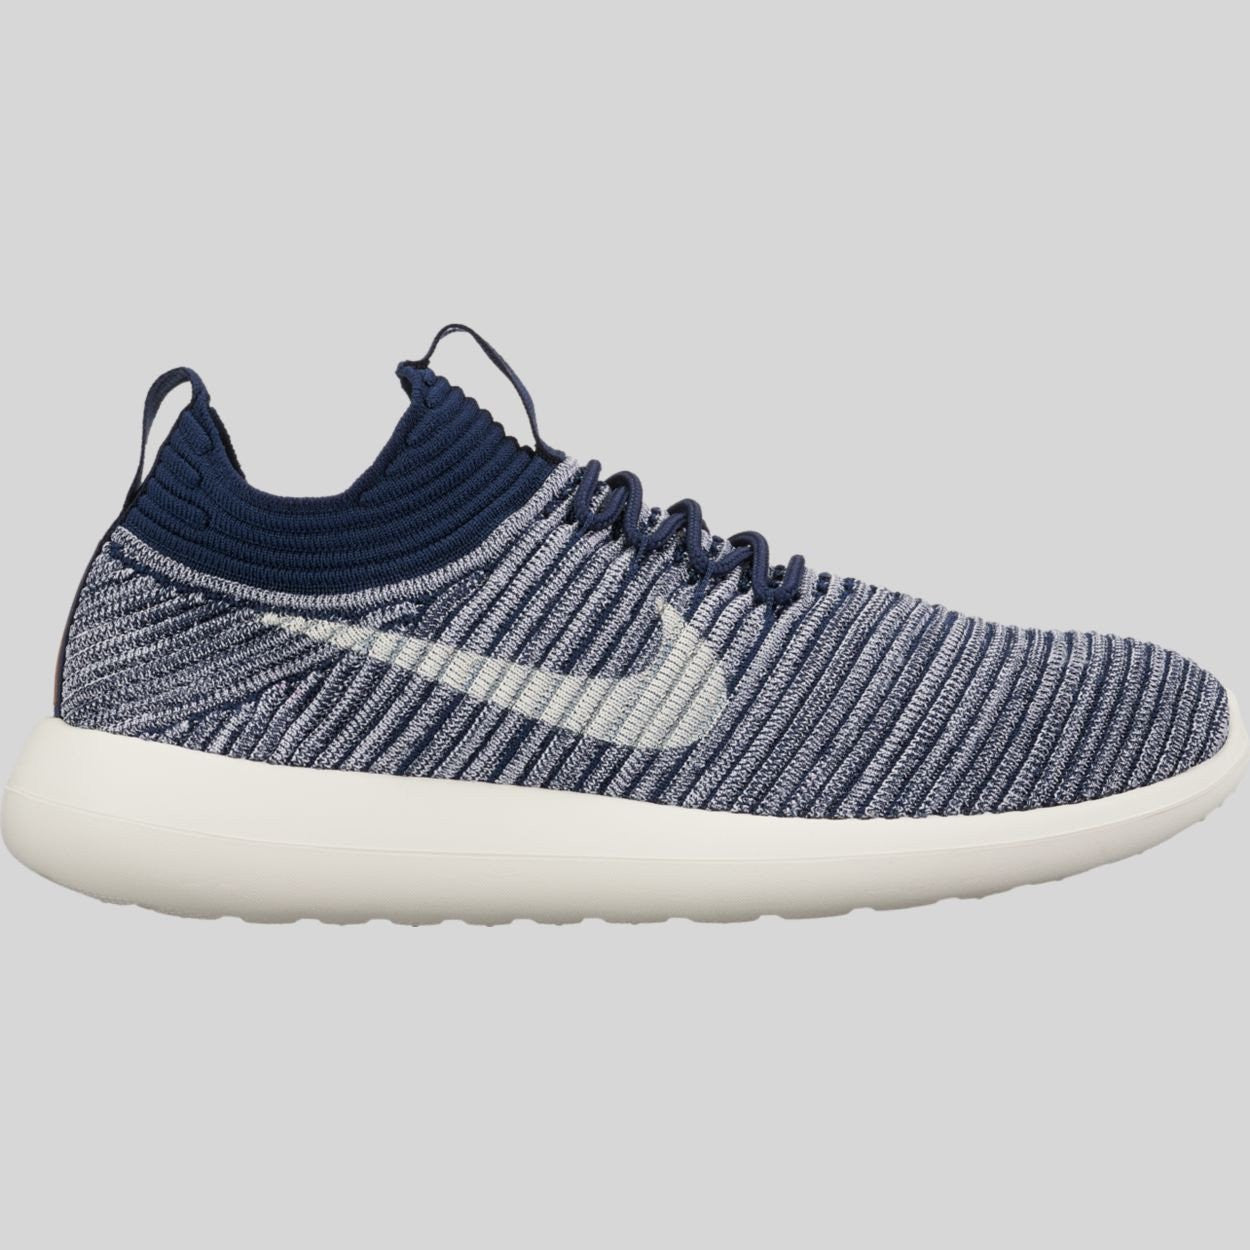 000b543d1d15e Nike Wmns Roshe Two Flyknit V2 College Navy Sail Metallic Coppercoin  (917688-400)